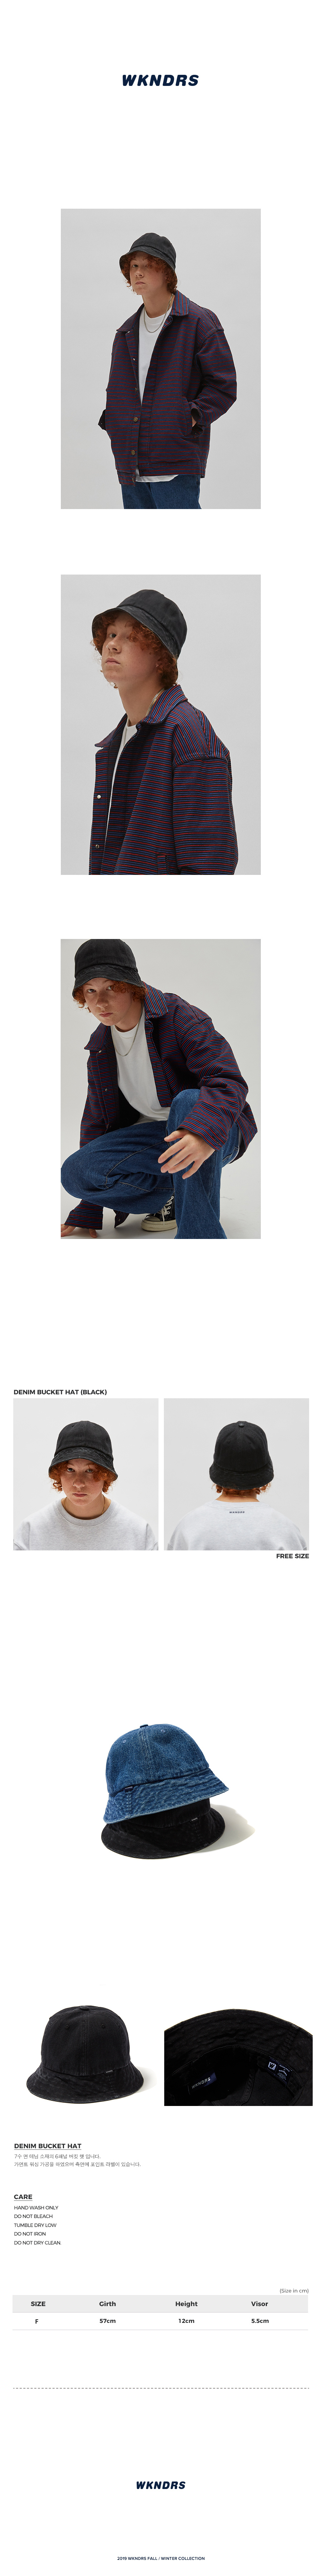 위캔더스(WKNDRS) DENIM BUCKET HAT (BLACK)